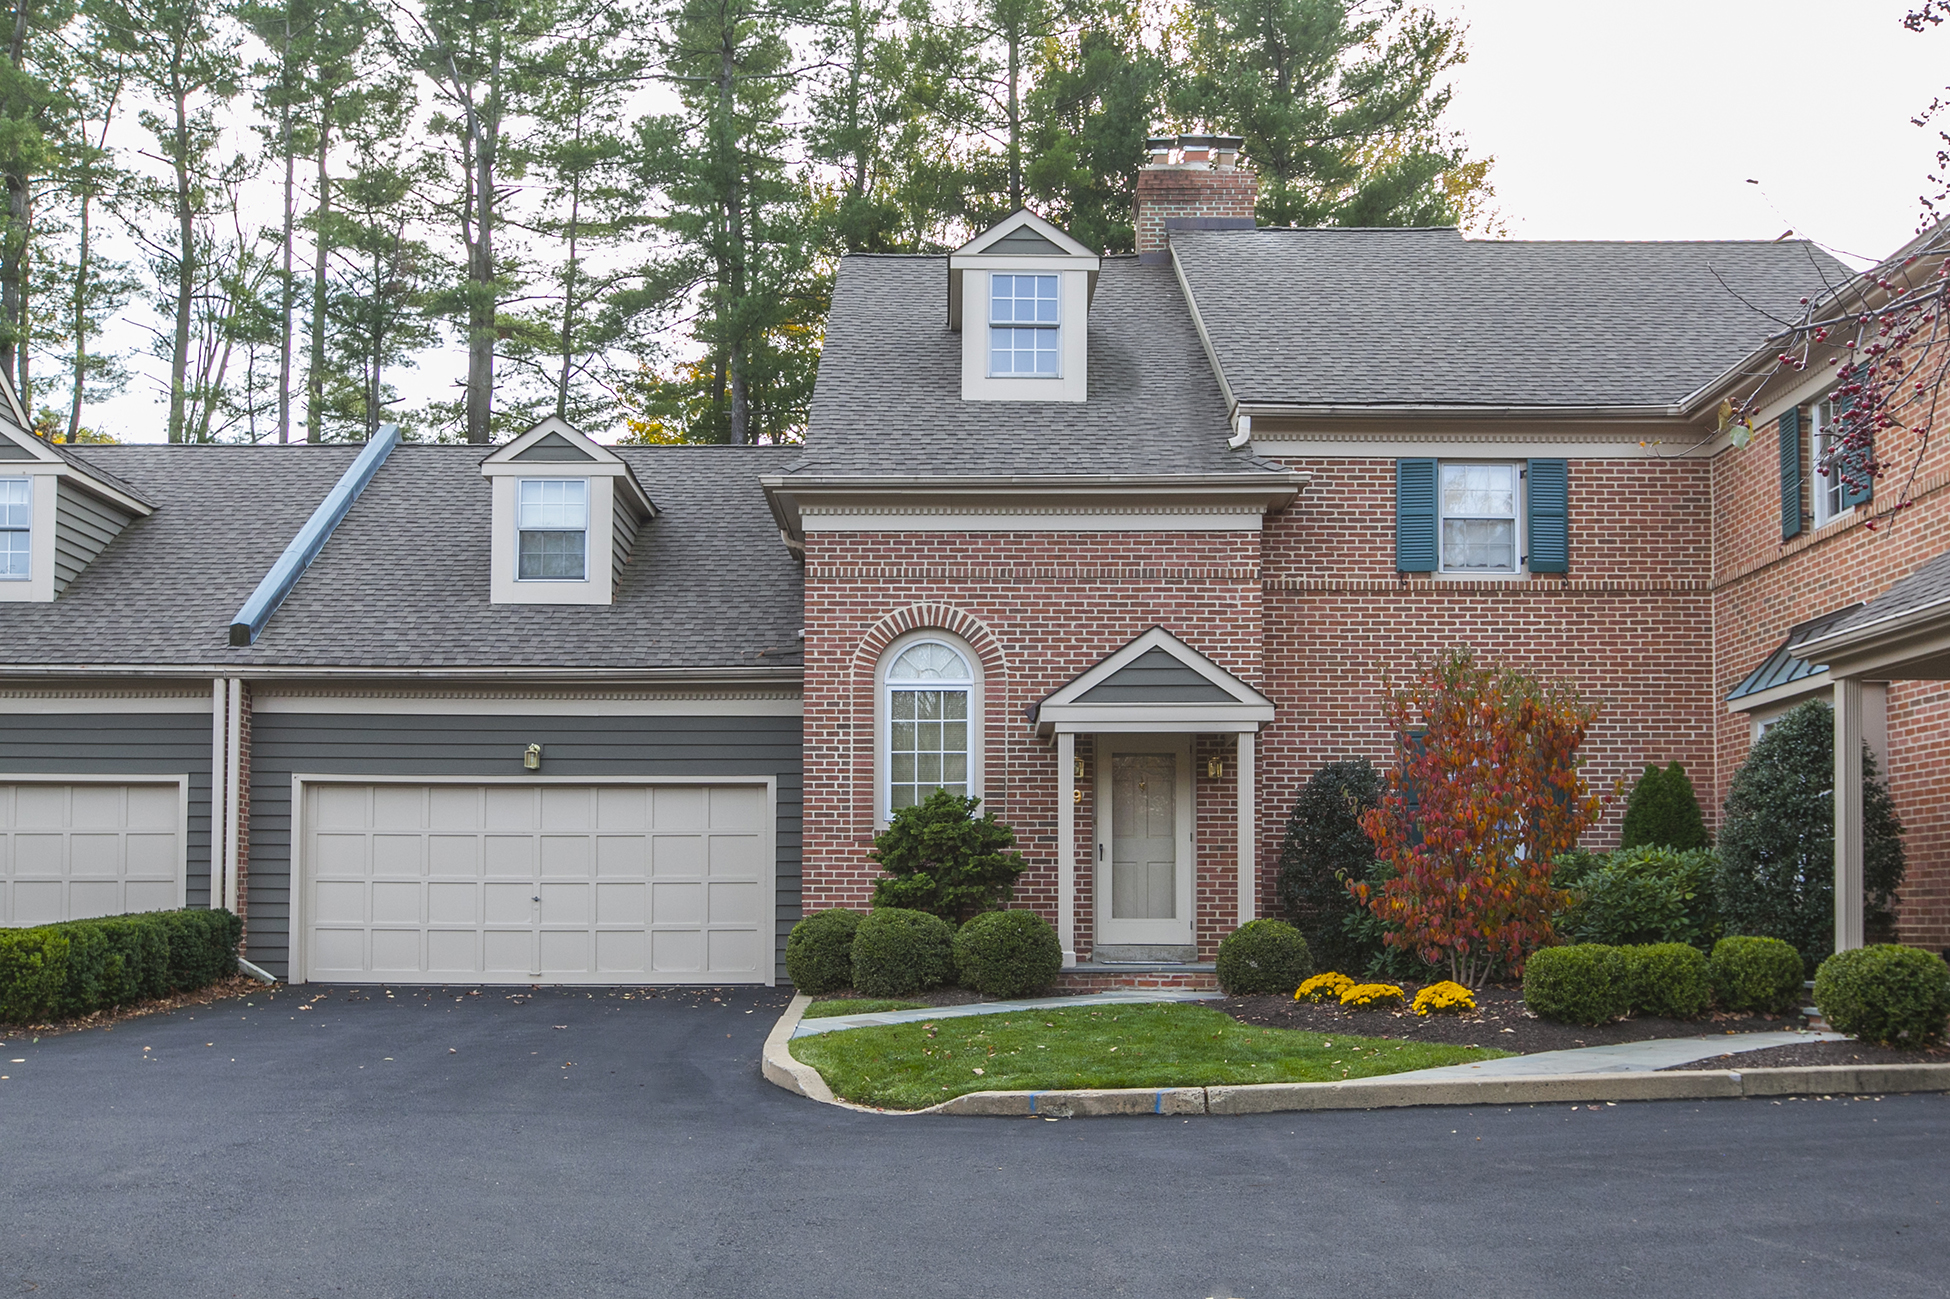 Townhouse for Sale at Every Comfort Accounted For 9 Aurora Court Doylestown, Pennsylvania 18901 United States